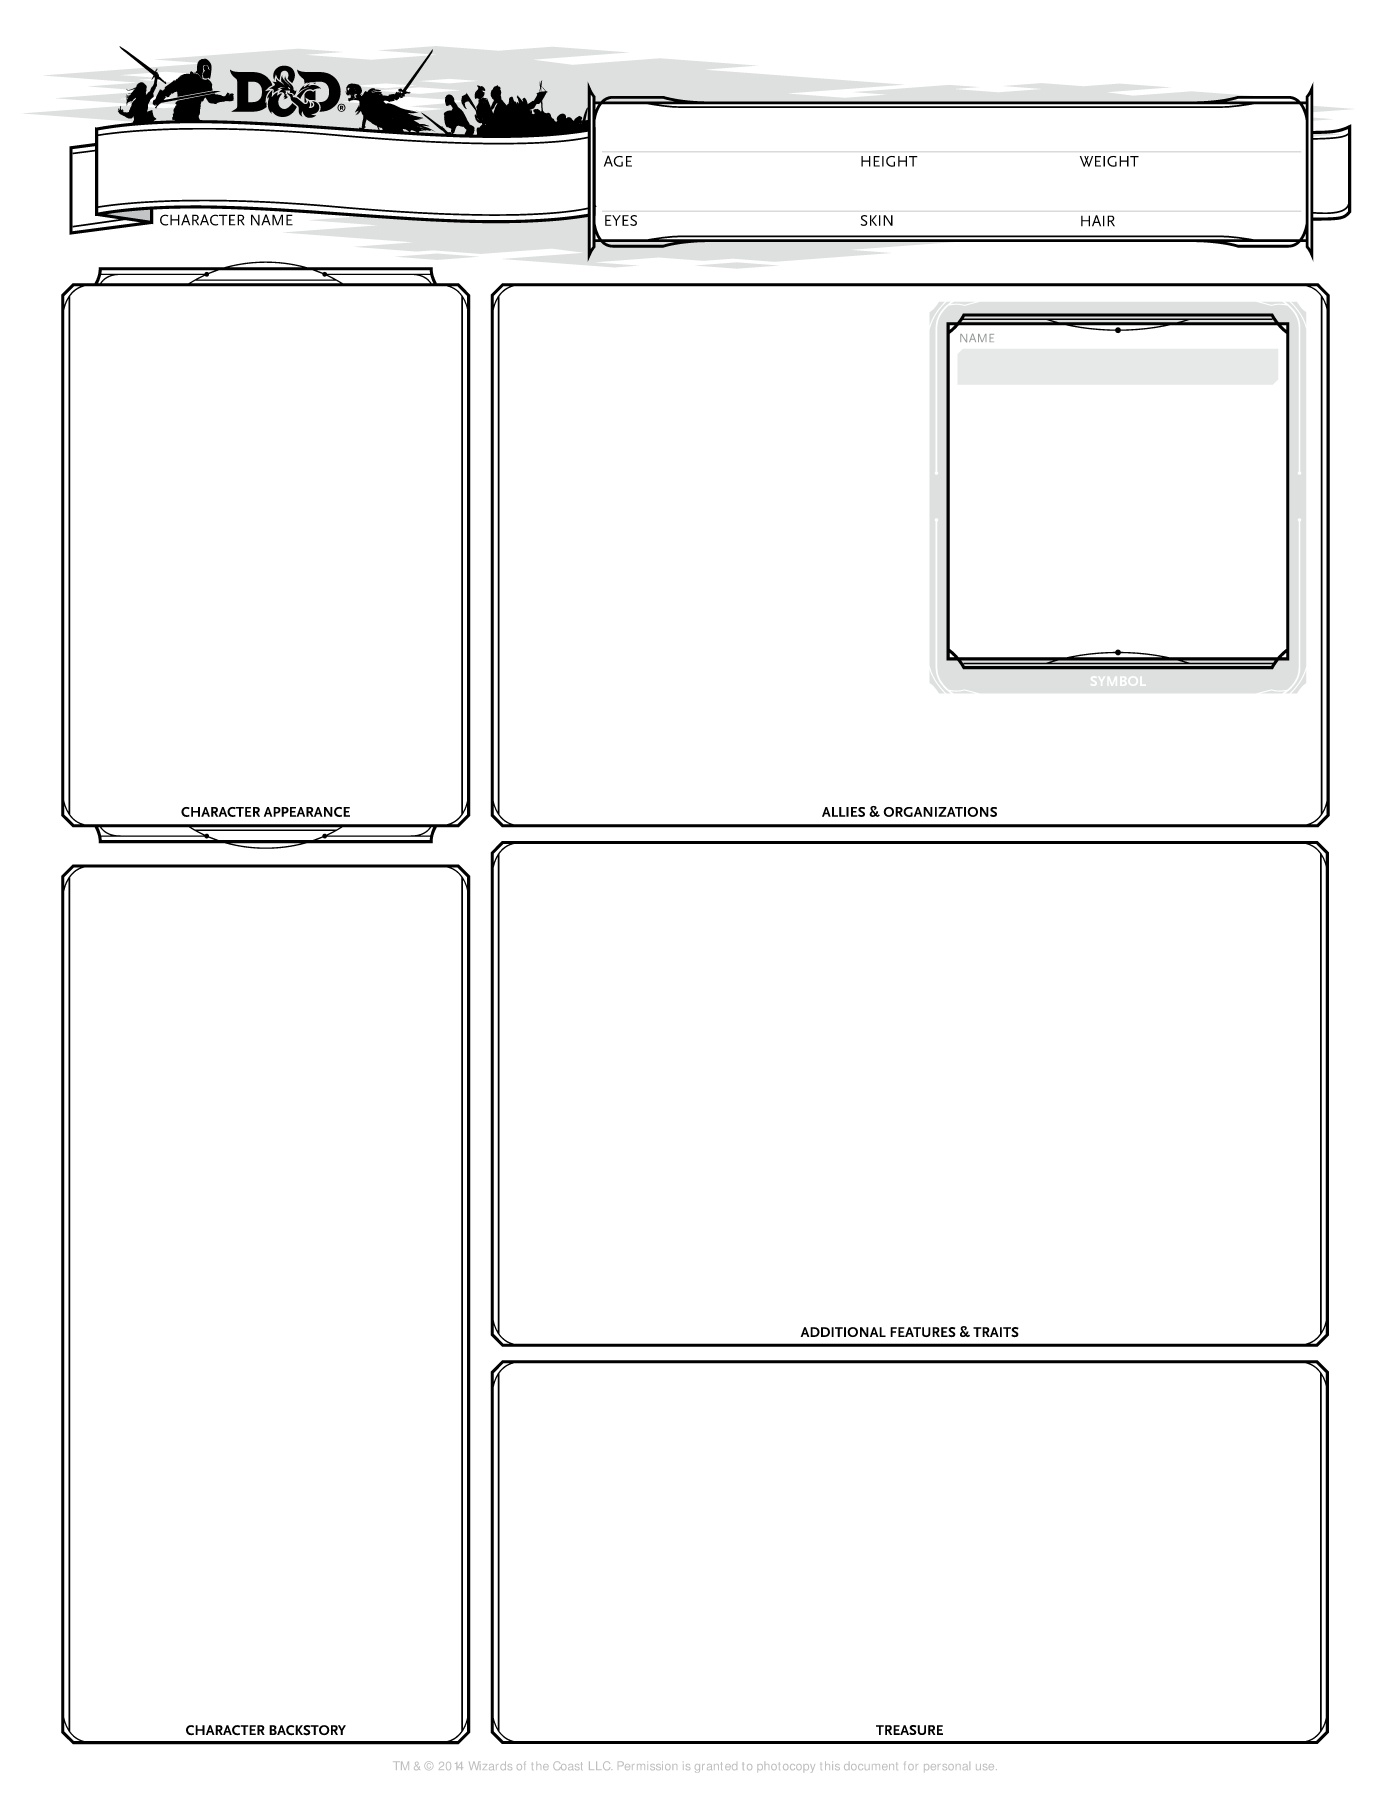 photo about Dnd 5e Printable Character Sheet identify TWC-DnD-5E-Personality-Sheet-v1.5 Internet pages 1 - 3 - Words Variation